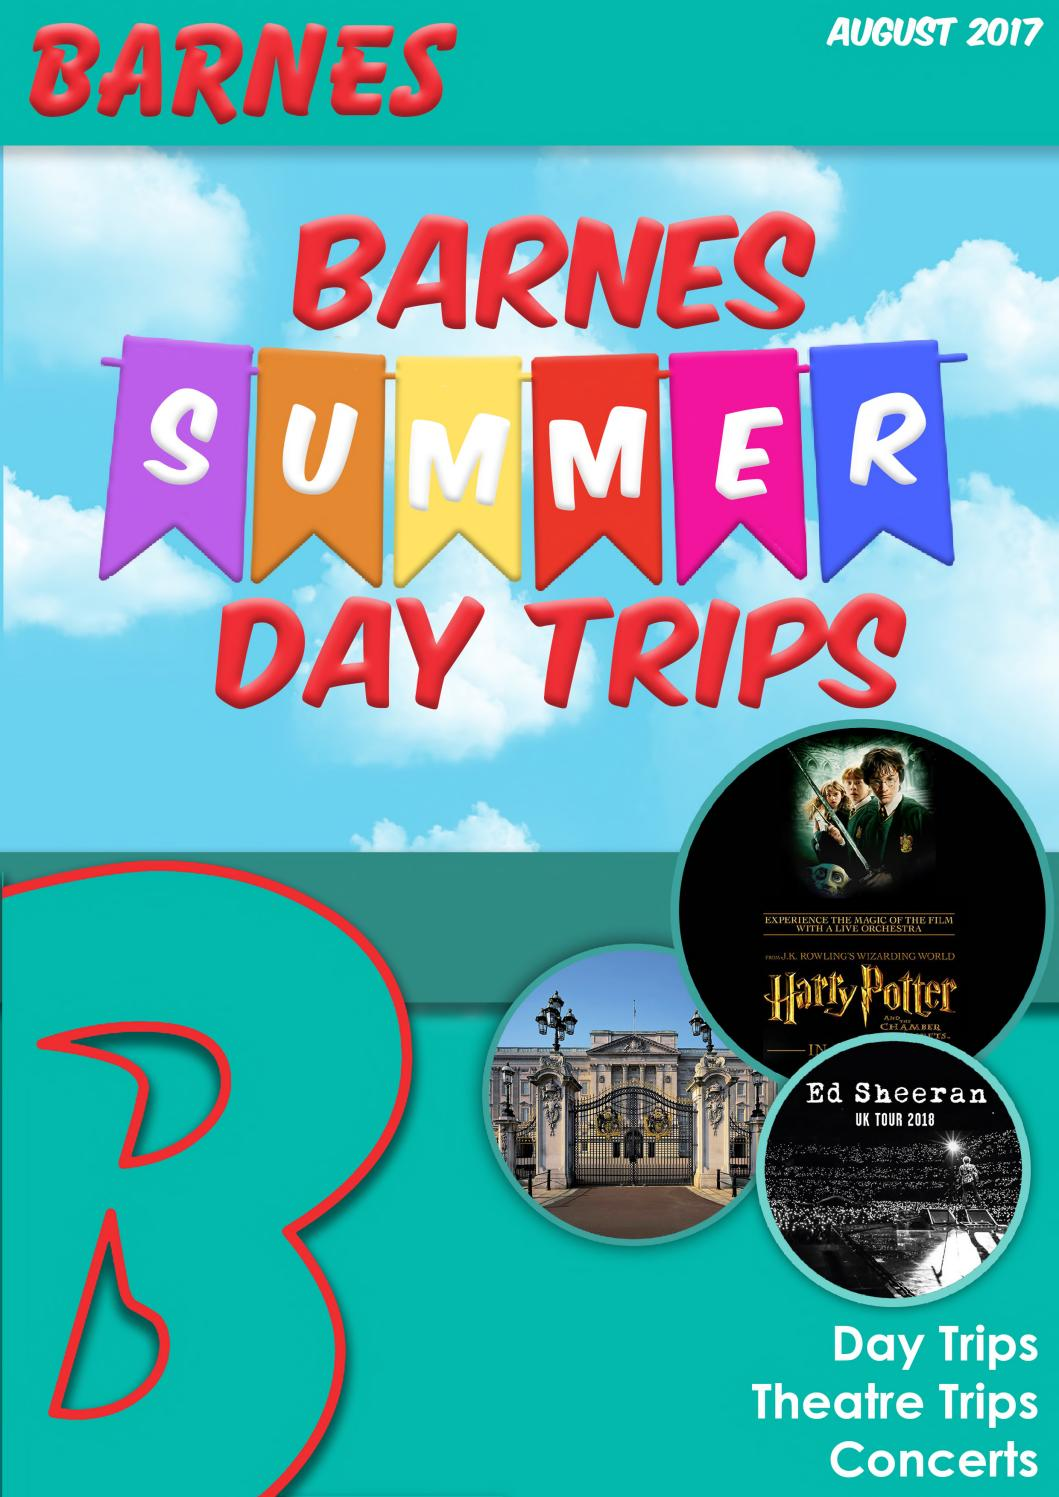 Day Trip Brochure August 2017 by Barnes Coaches - Issuu